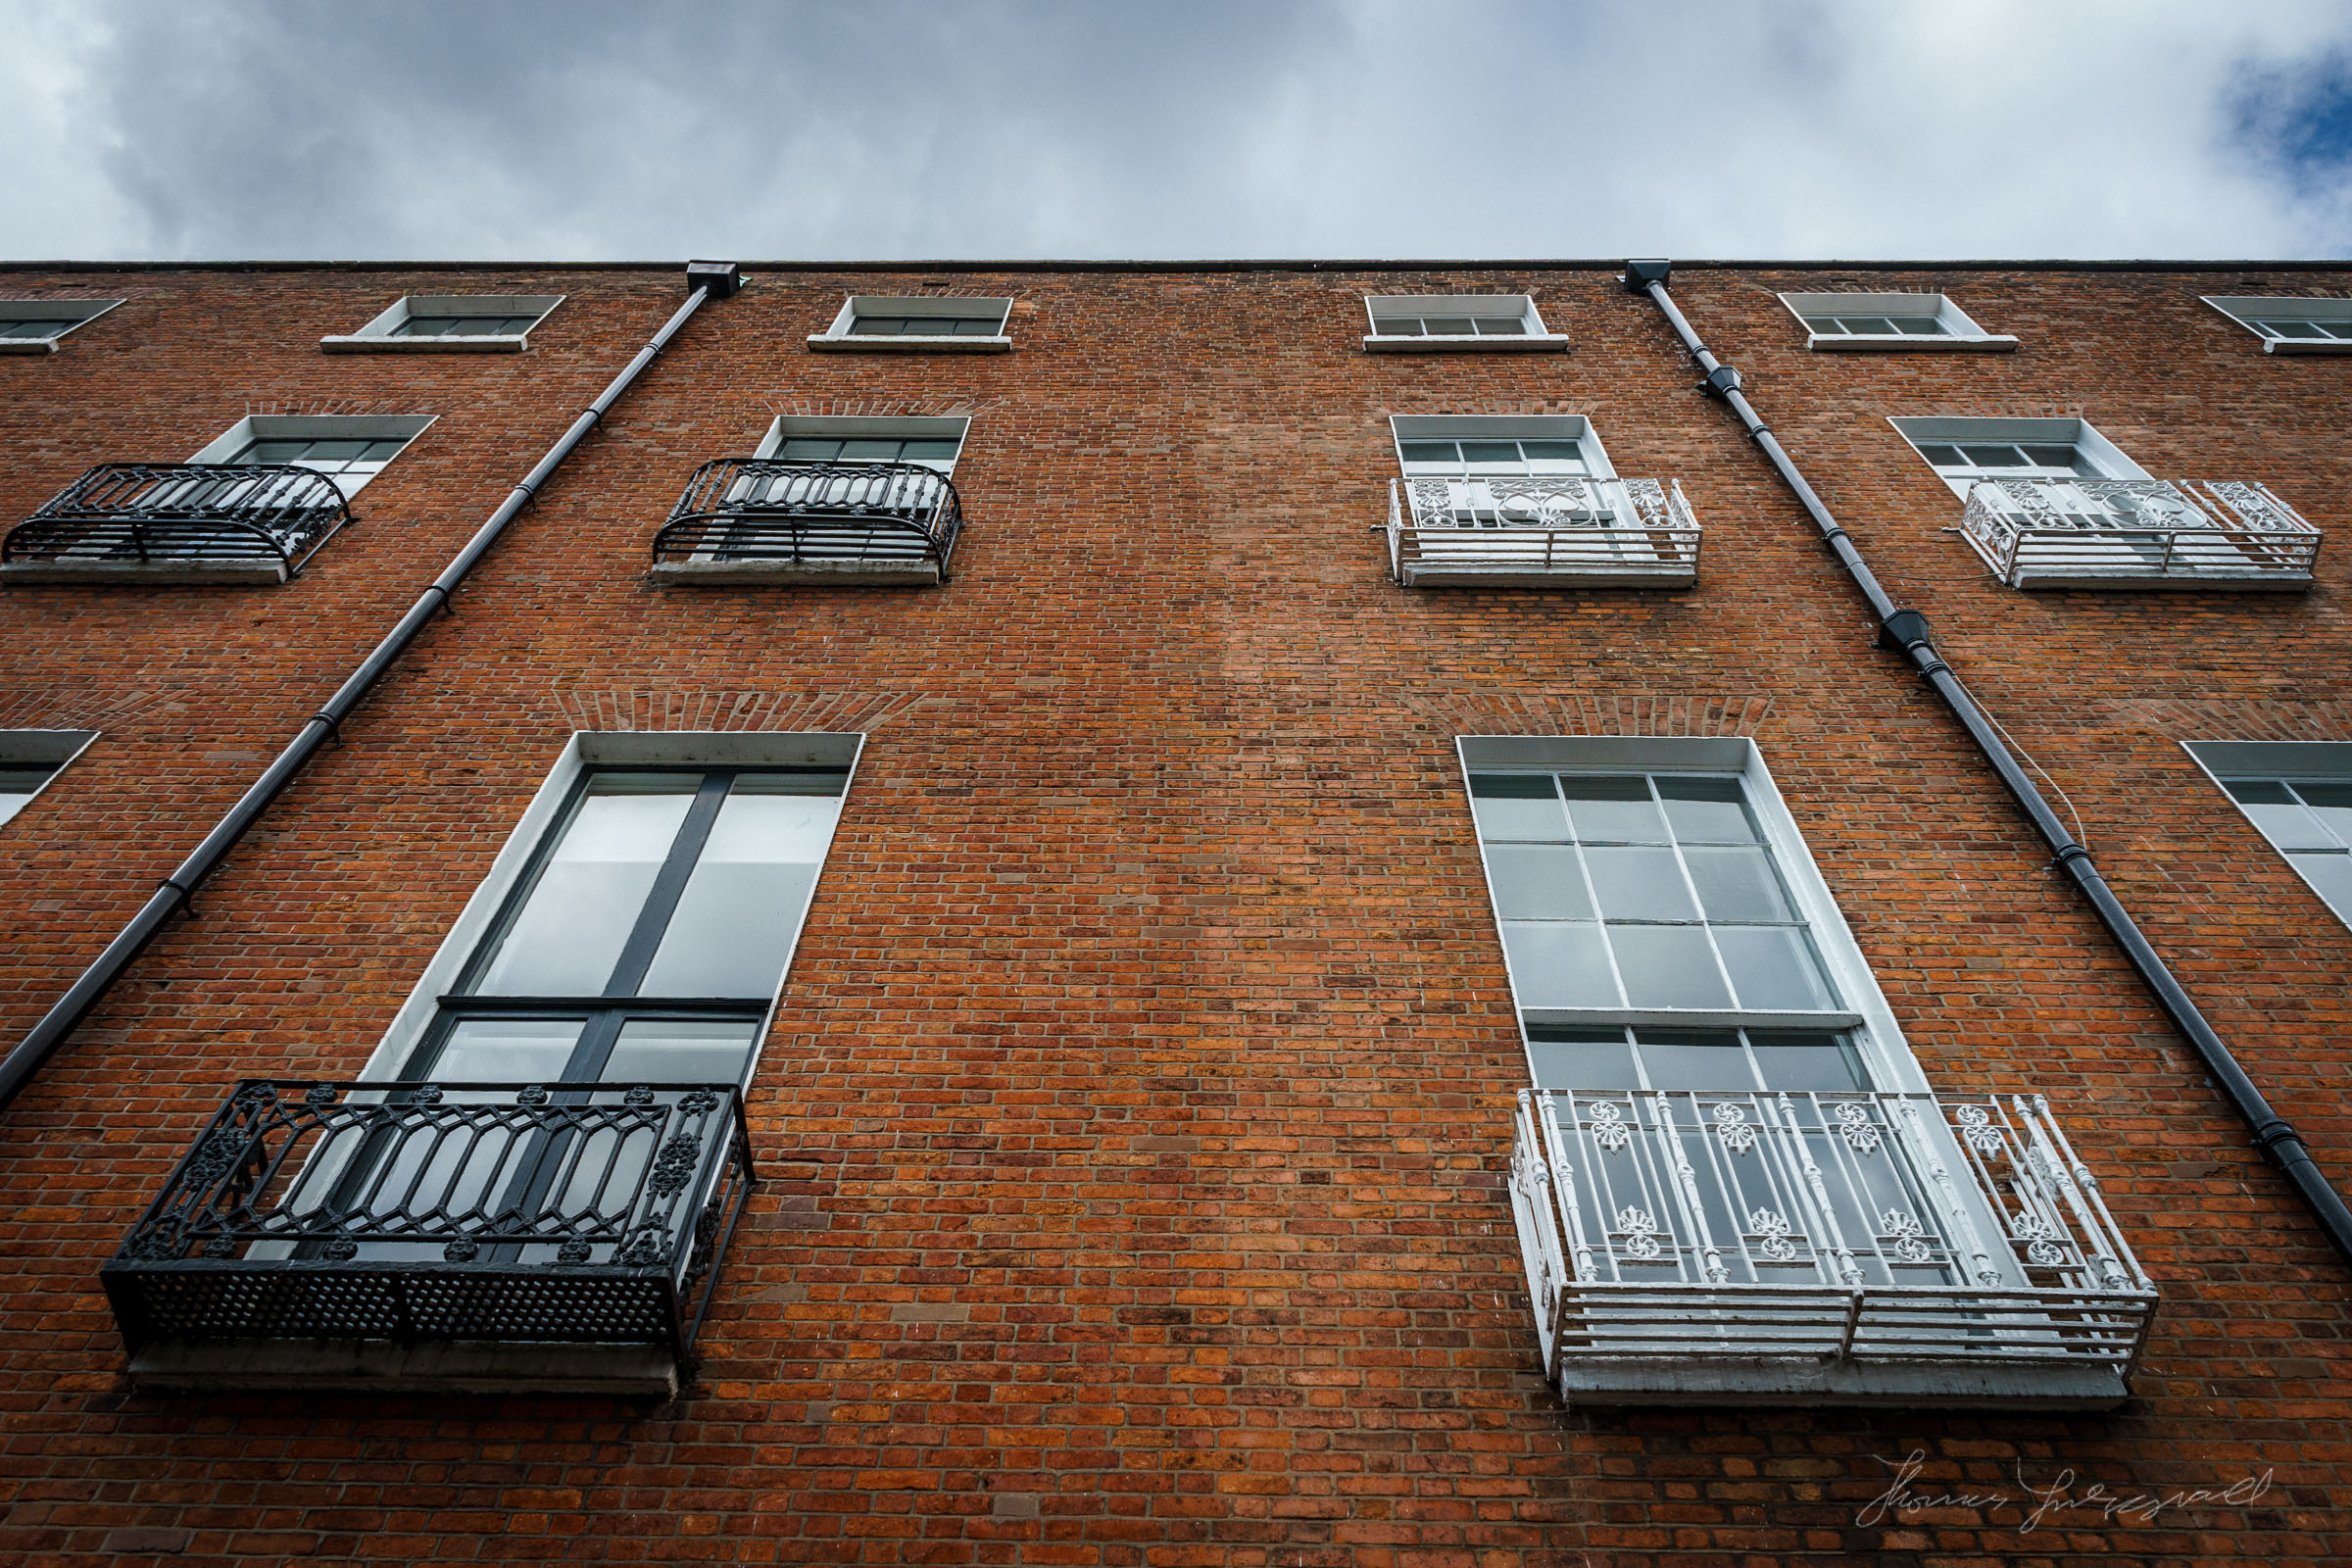 Streets-of-Dublin-Photo-04120.jpg